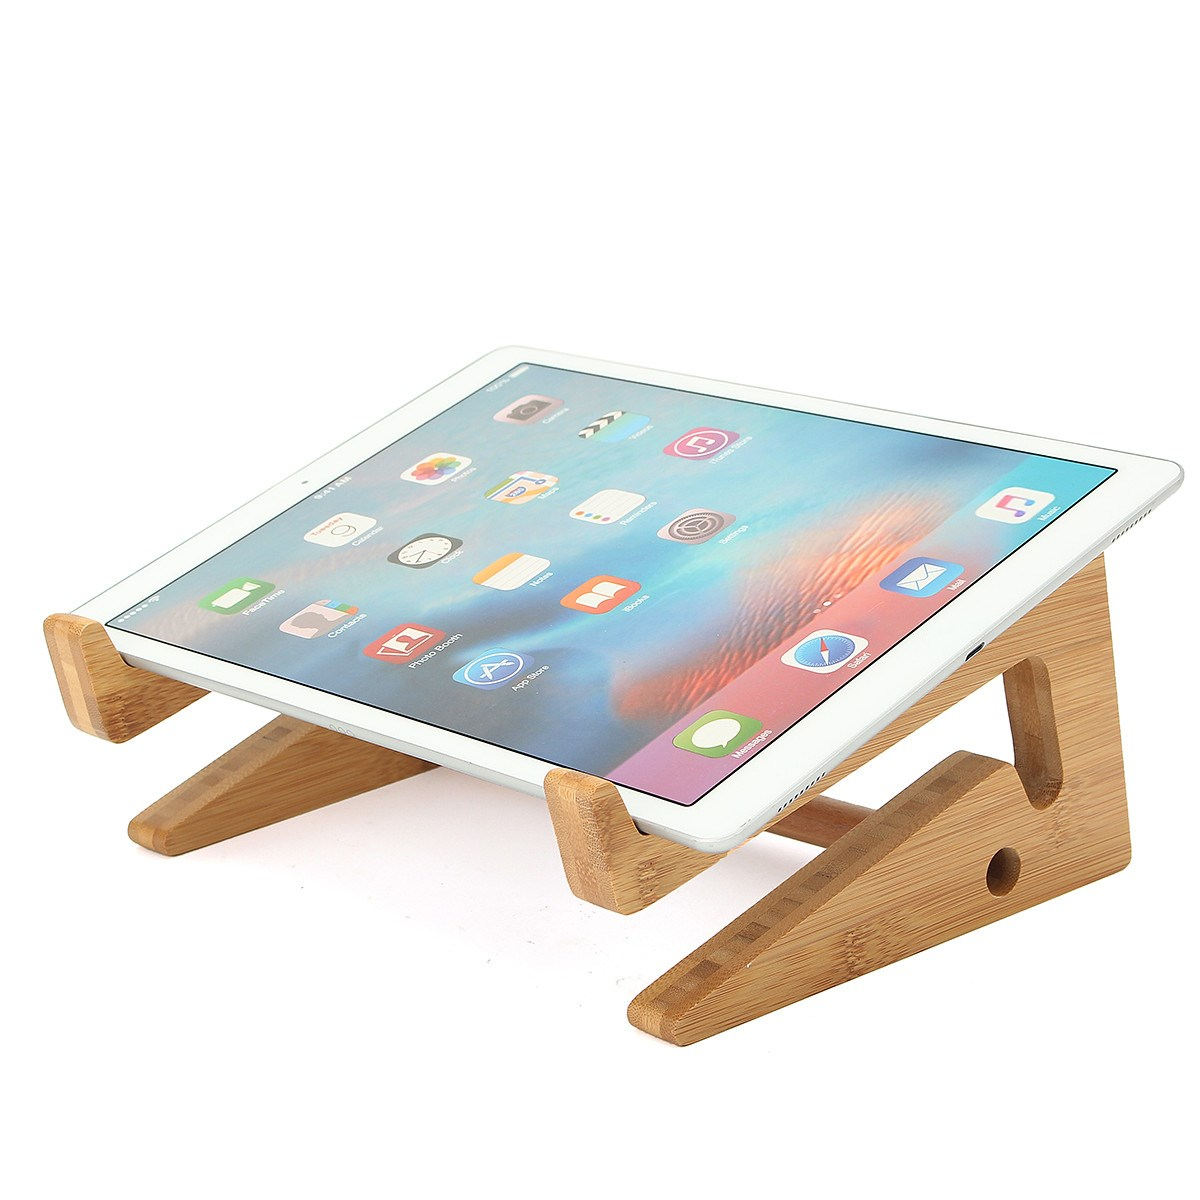 Detachable Laptop Desk Laptop Stand Wooden Holder Mount For Macbook Tablet  PC Notebook Portable Lapdesks With Cooling Function In Lapdesks From  Computer ...